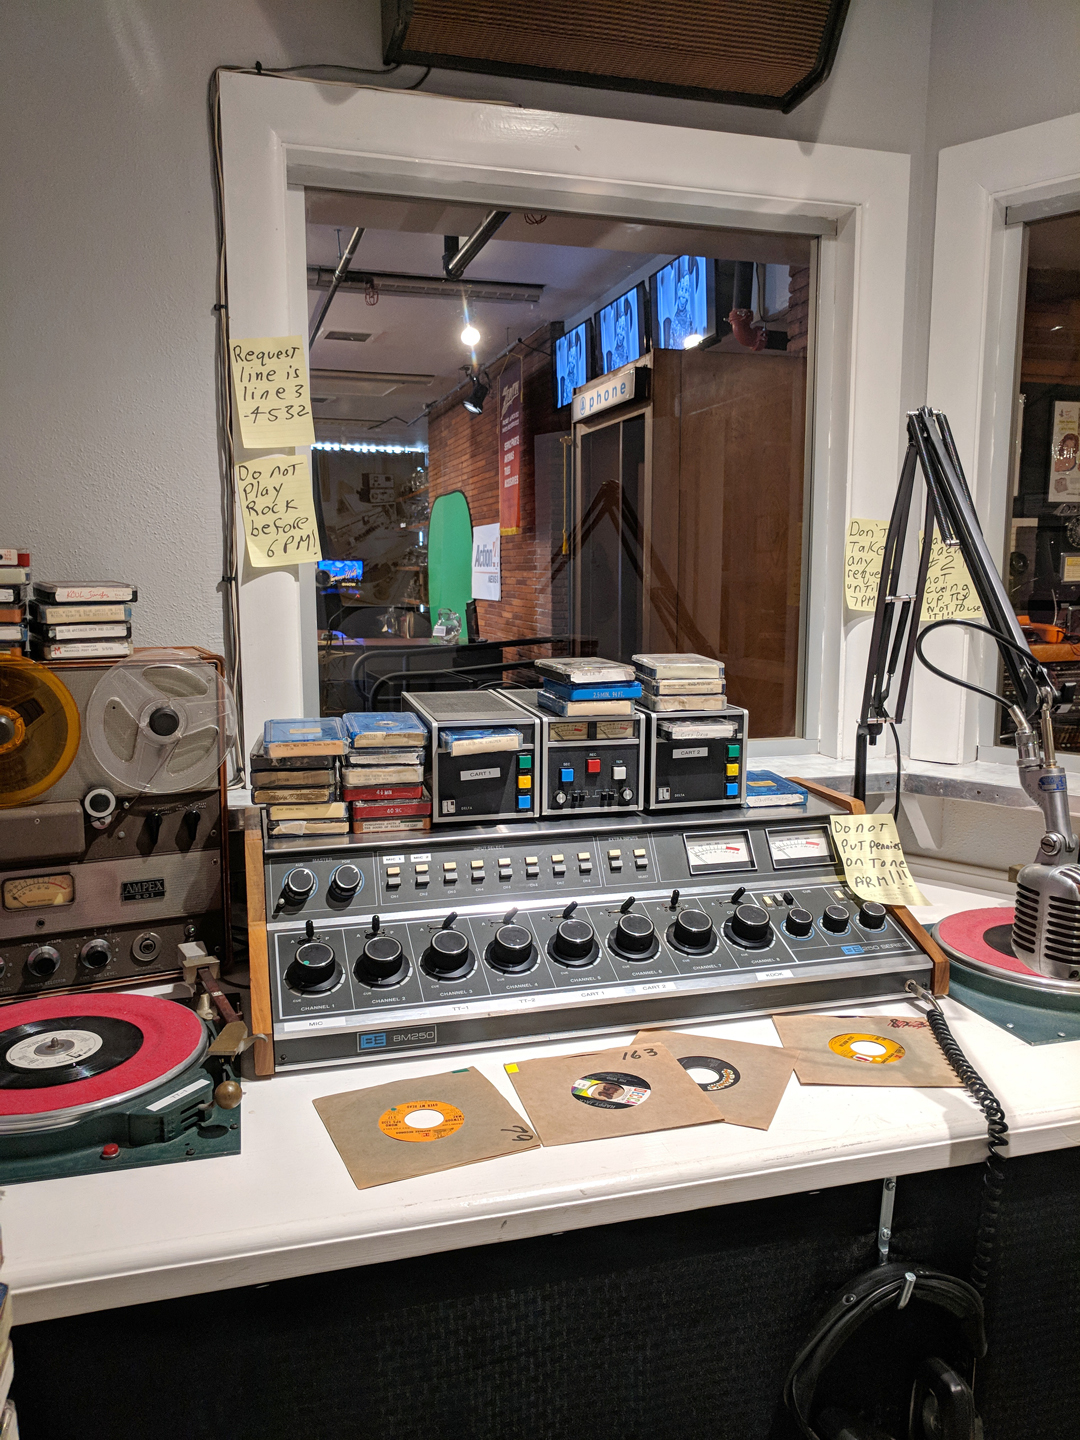 https://texasbroadcastmuseum.com/wp-content/uploads/2018/06/radio_booth.jpg